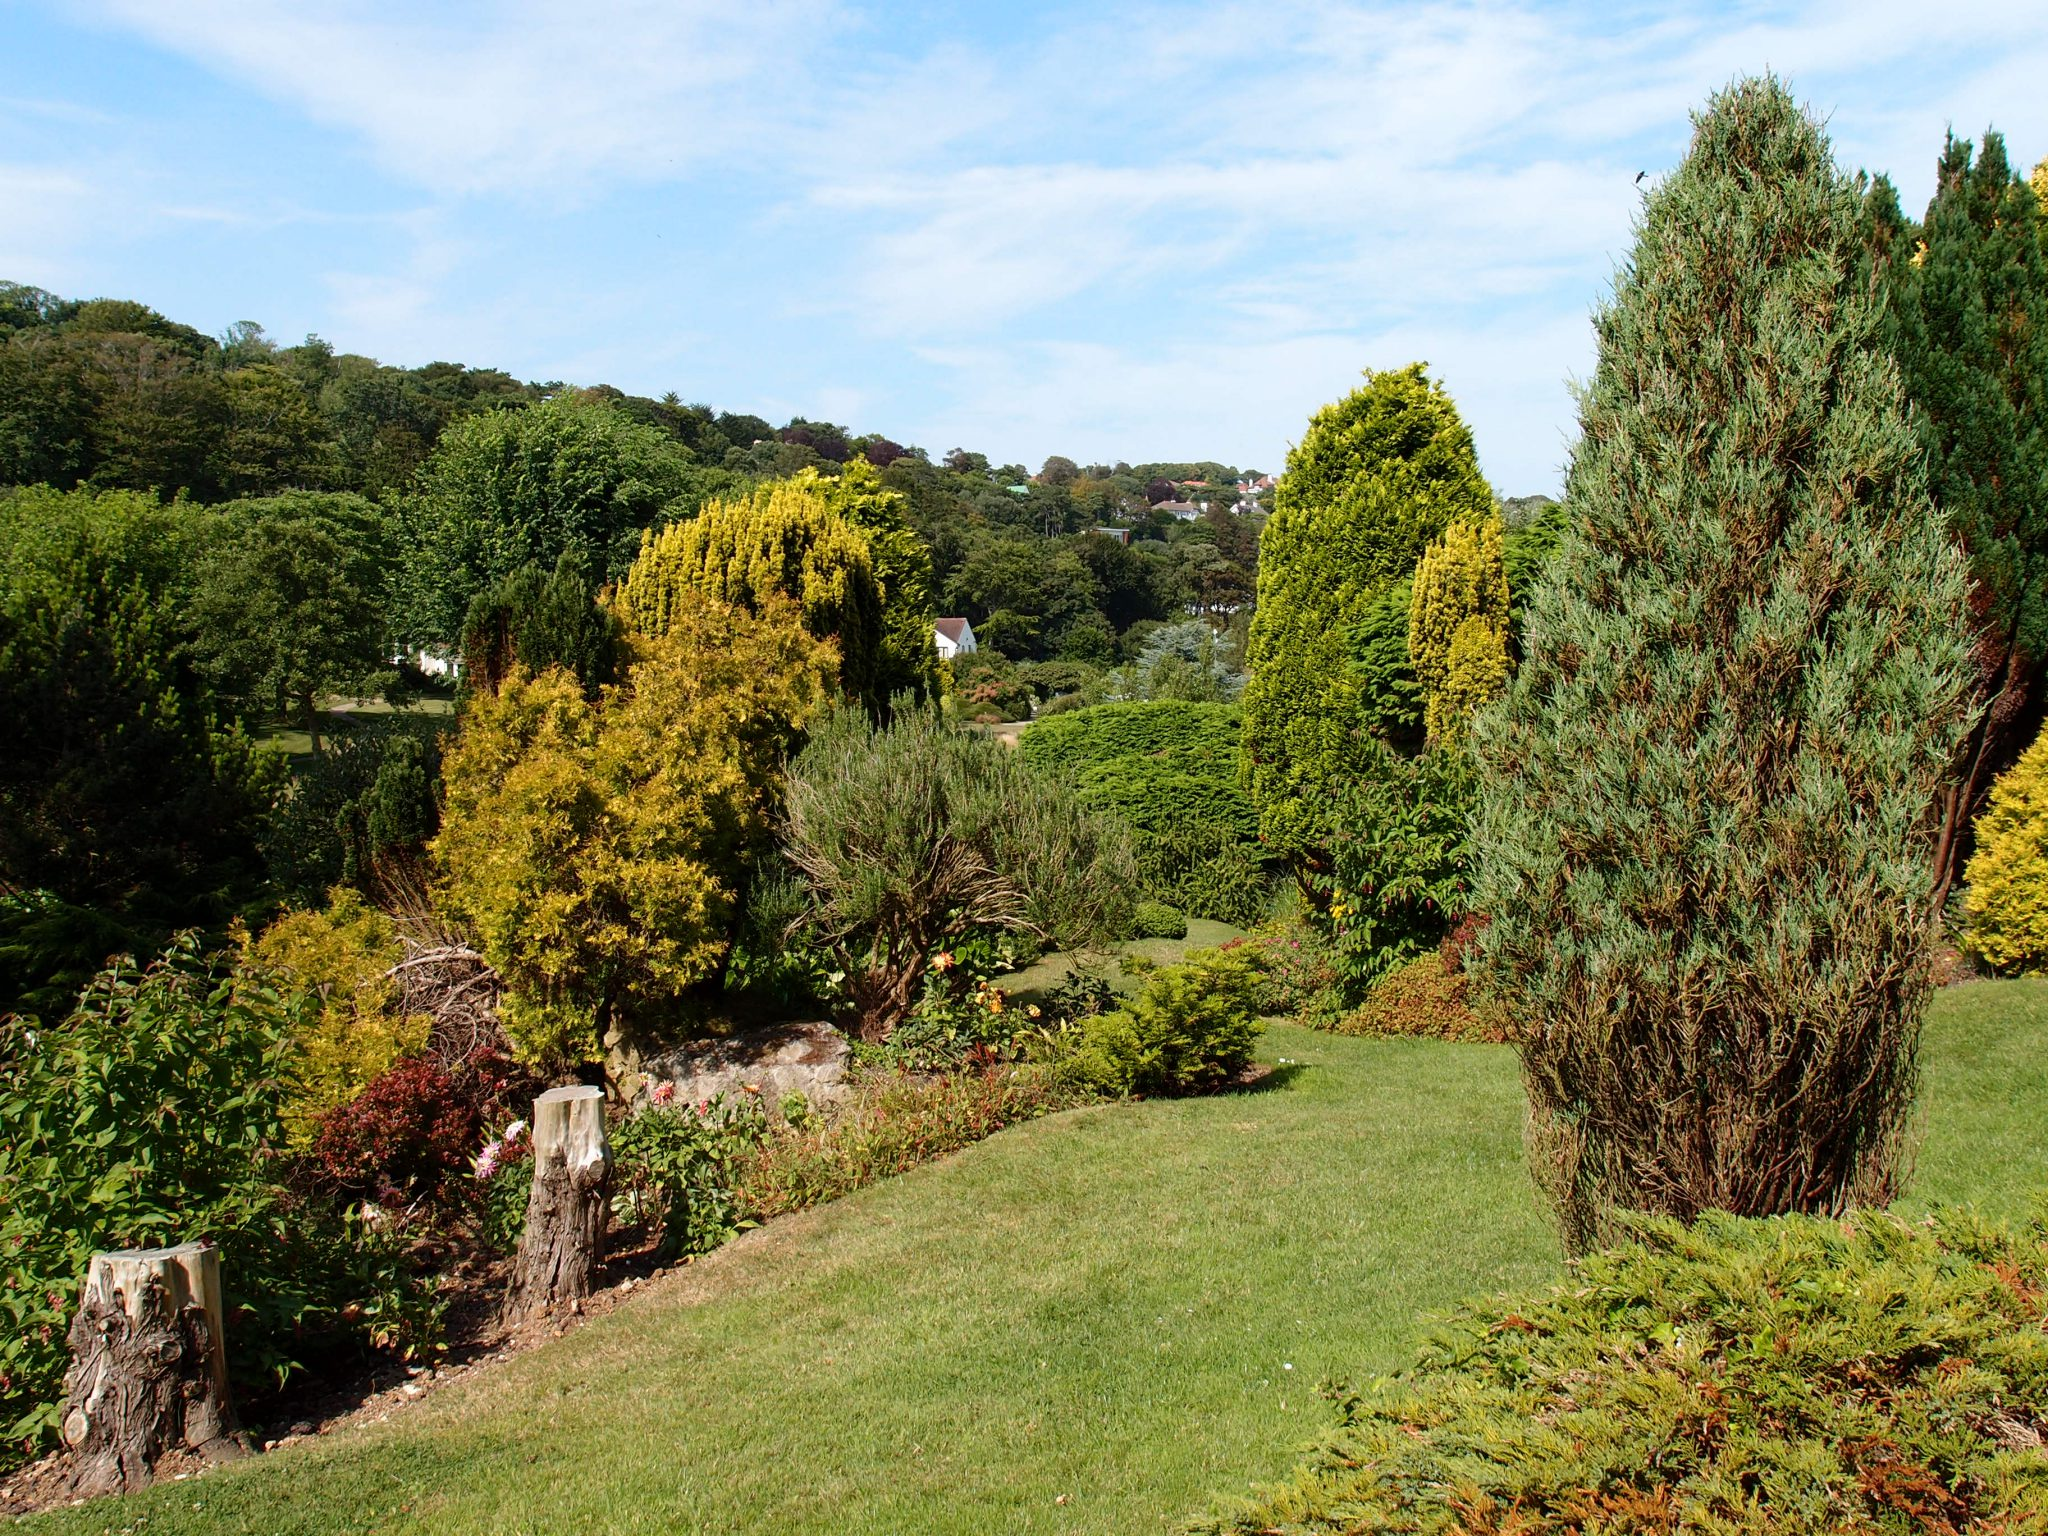 The arboretum, above the pond. It's beautiful at St.-Margaret's-at-Cliffe, isn't it!